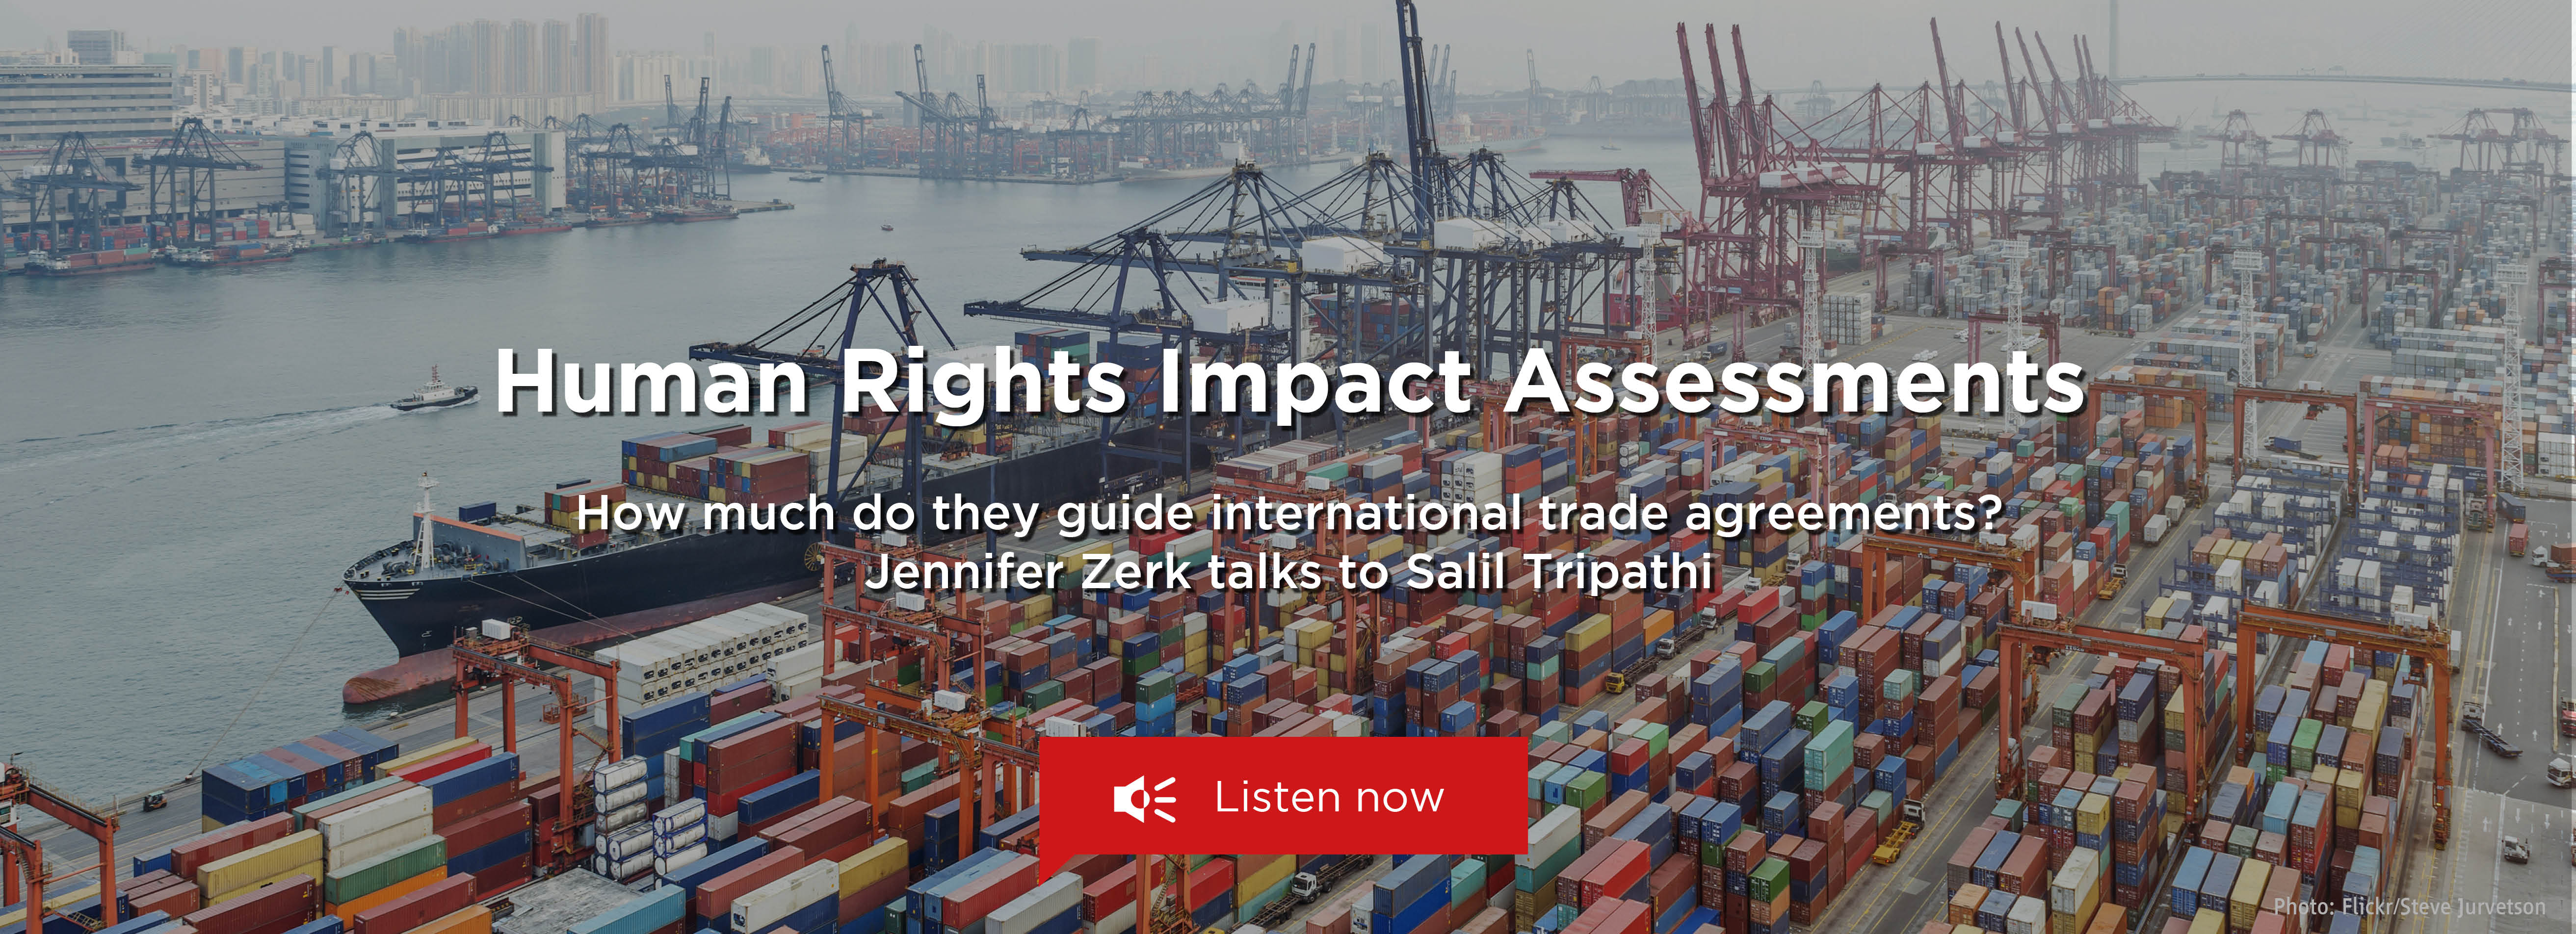 Jennifer Zerk on Human Rights Impact Assessments of International Trade Agreements